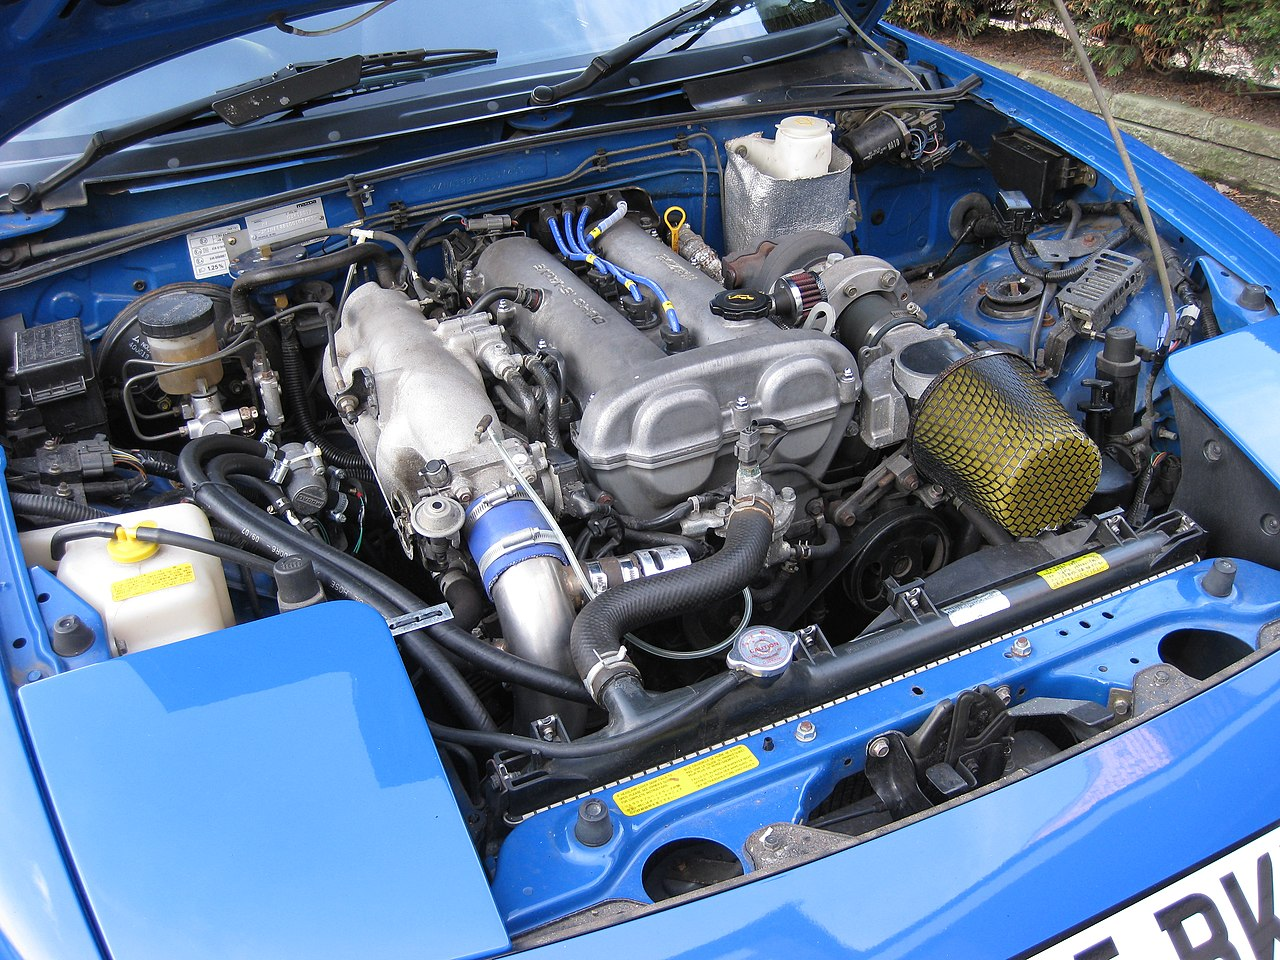 File:1990 mazda mx5 1.6 DOHC 4 cylinder turbo.jpg